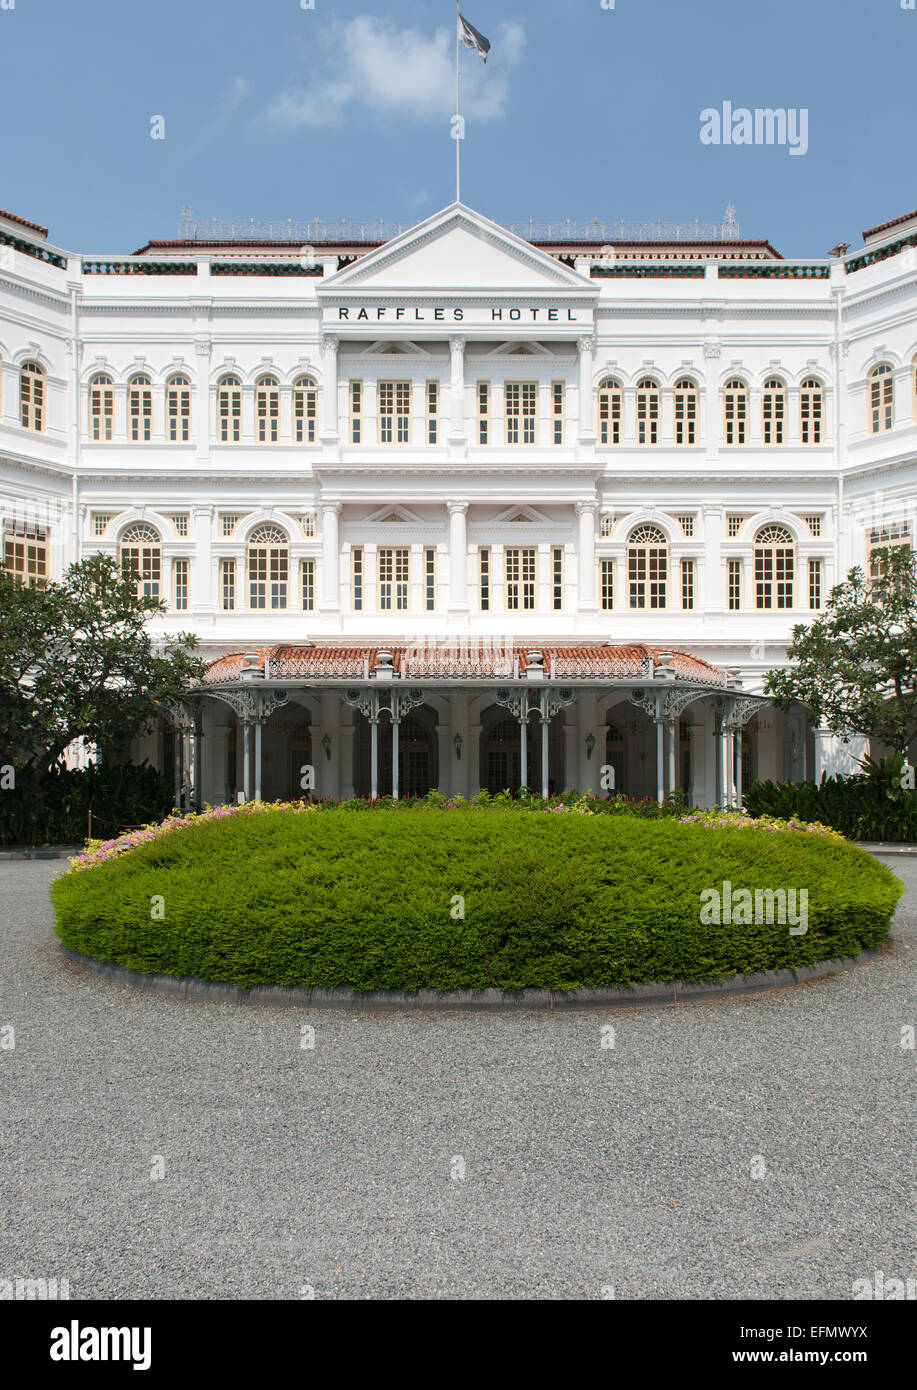 The Raffles Hotel in Singapore. - Stock Image